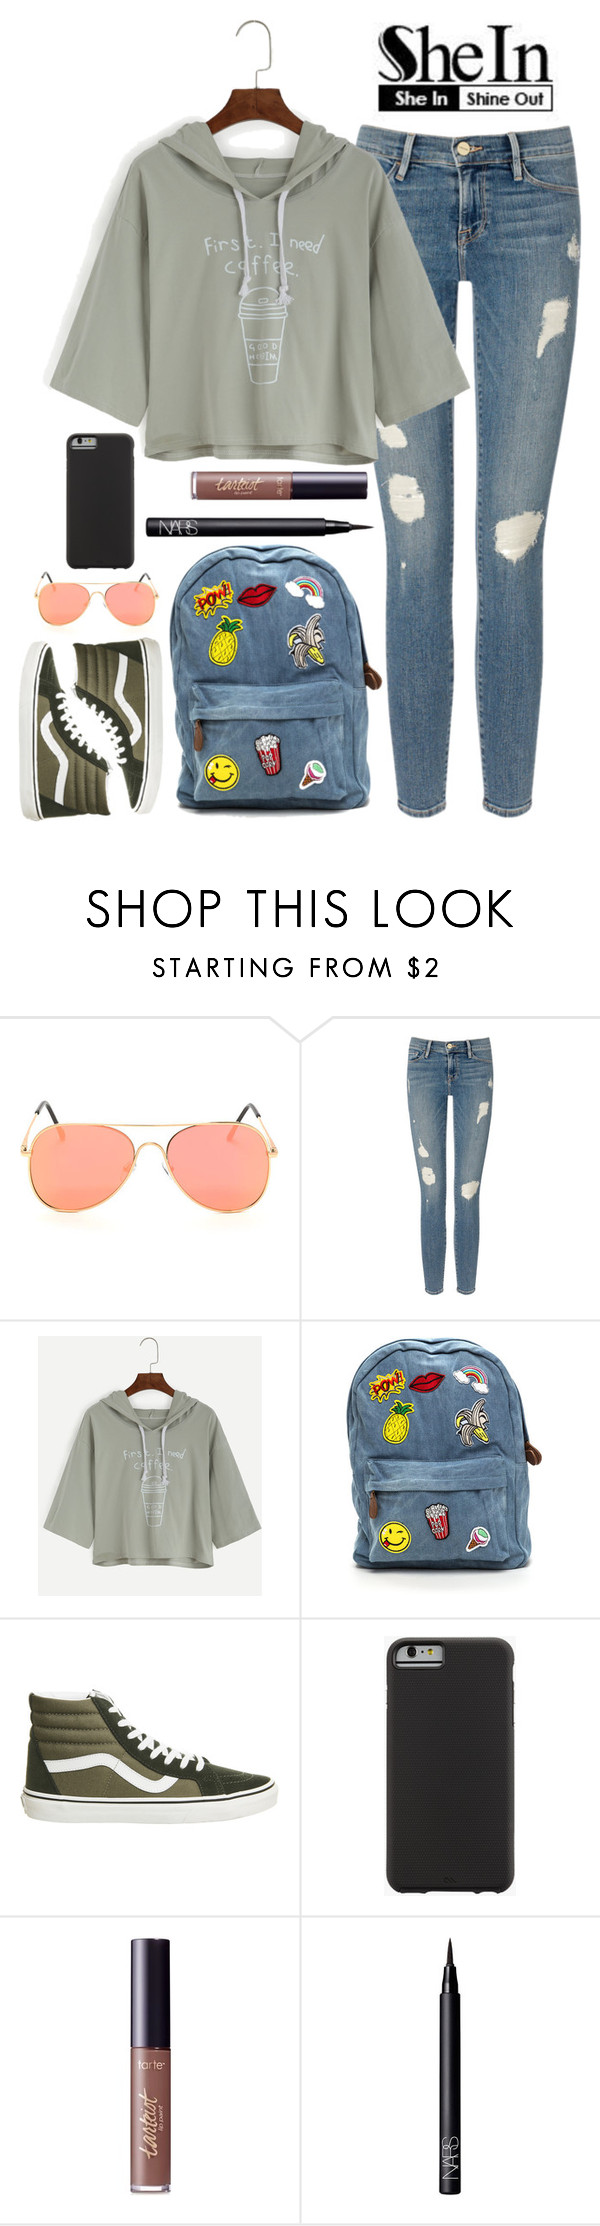 """olive olive"" by blissfulchapters ❤ liked on Polyvore featuring Frame Denim, Vans, Case-Mate, tarte and NARS Cosmetics"